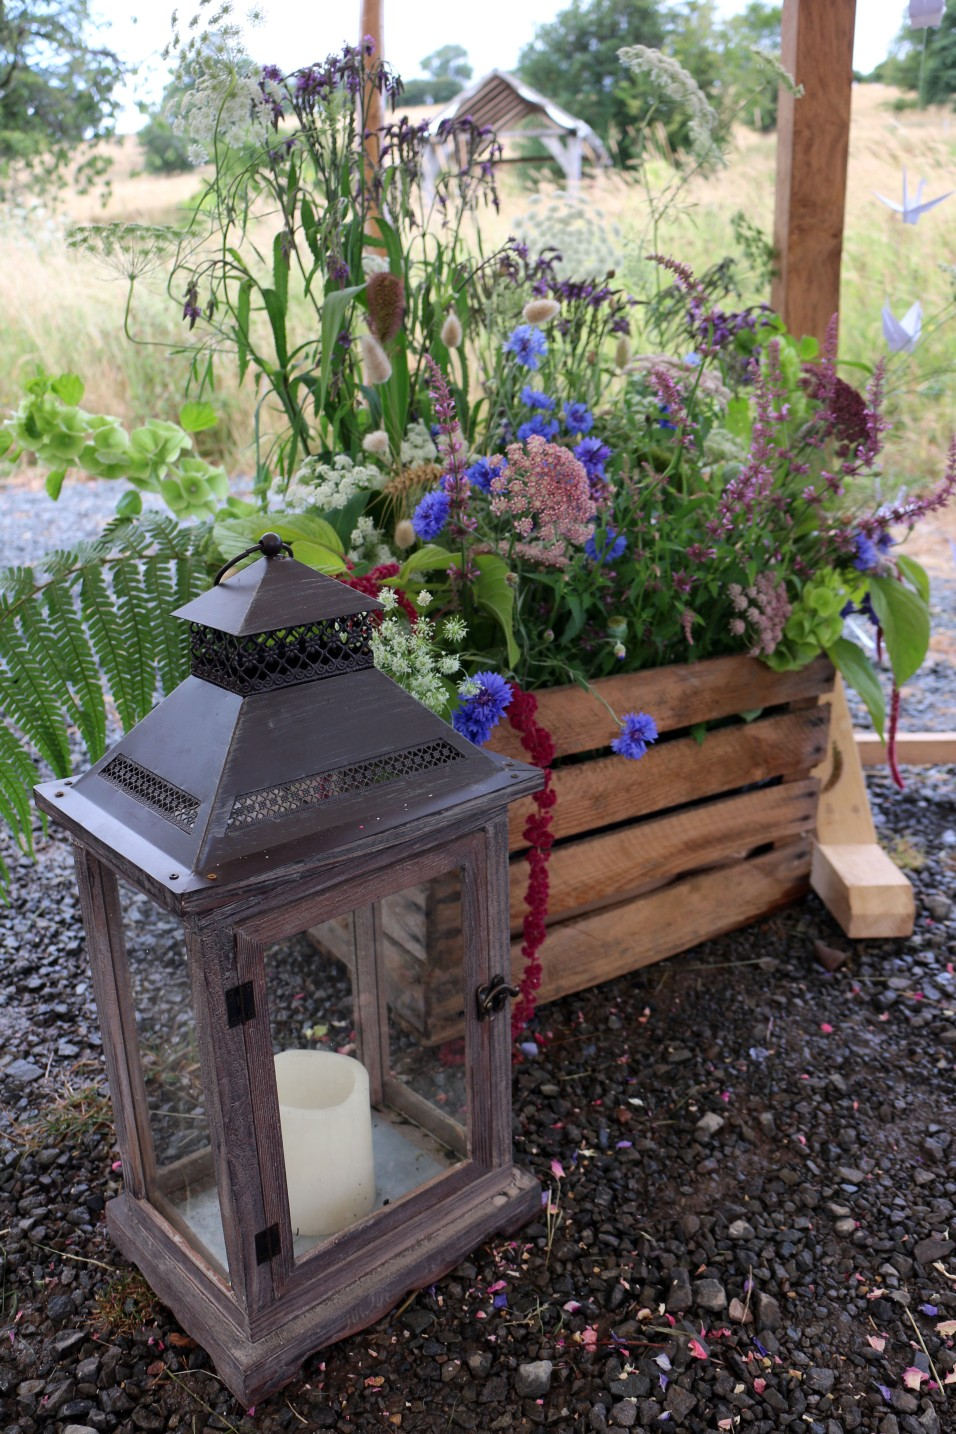 Ceremony Lantern and Flower Crate